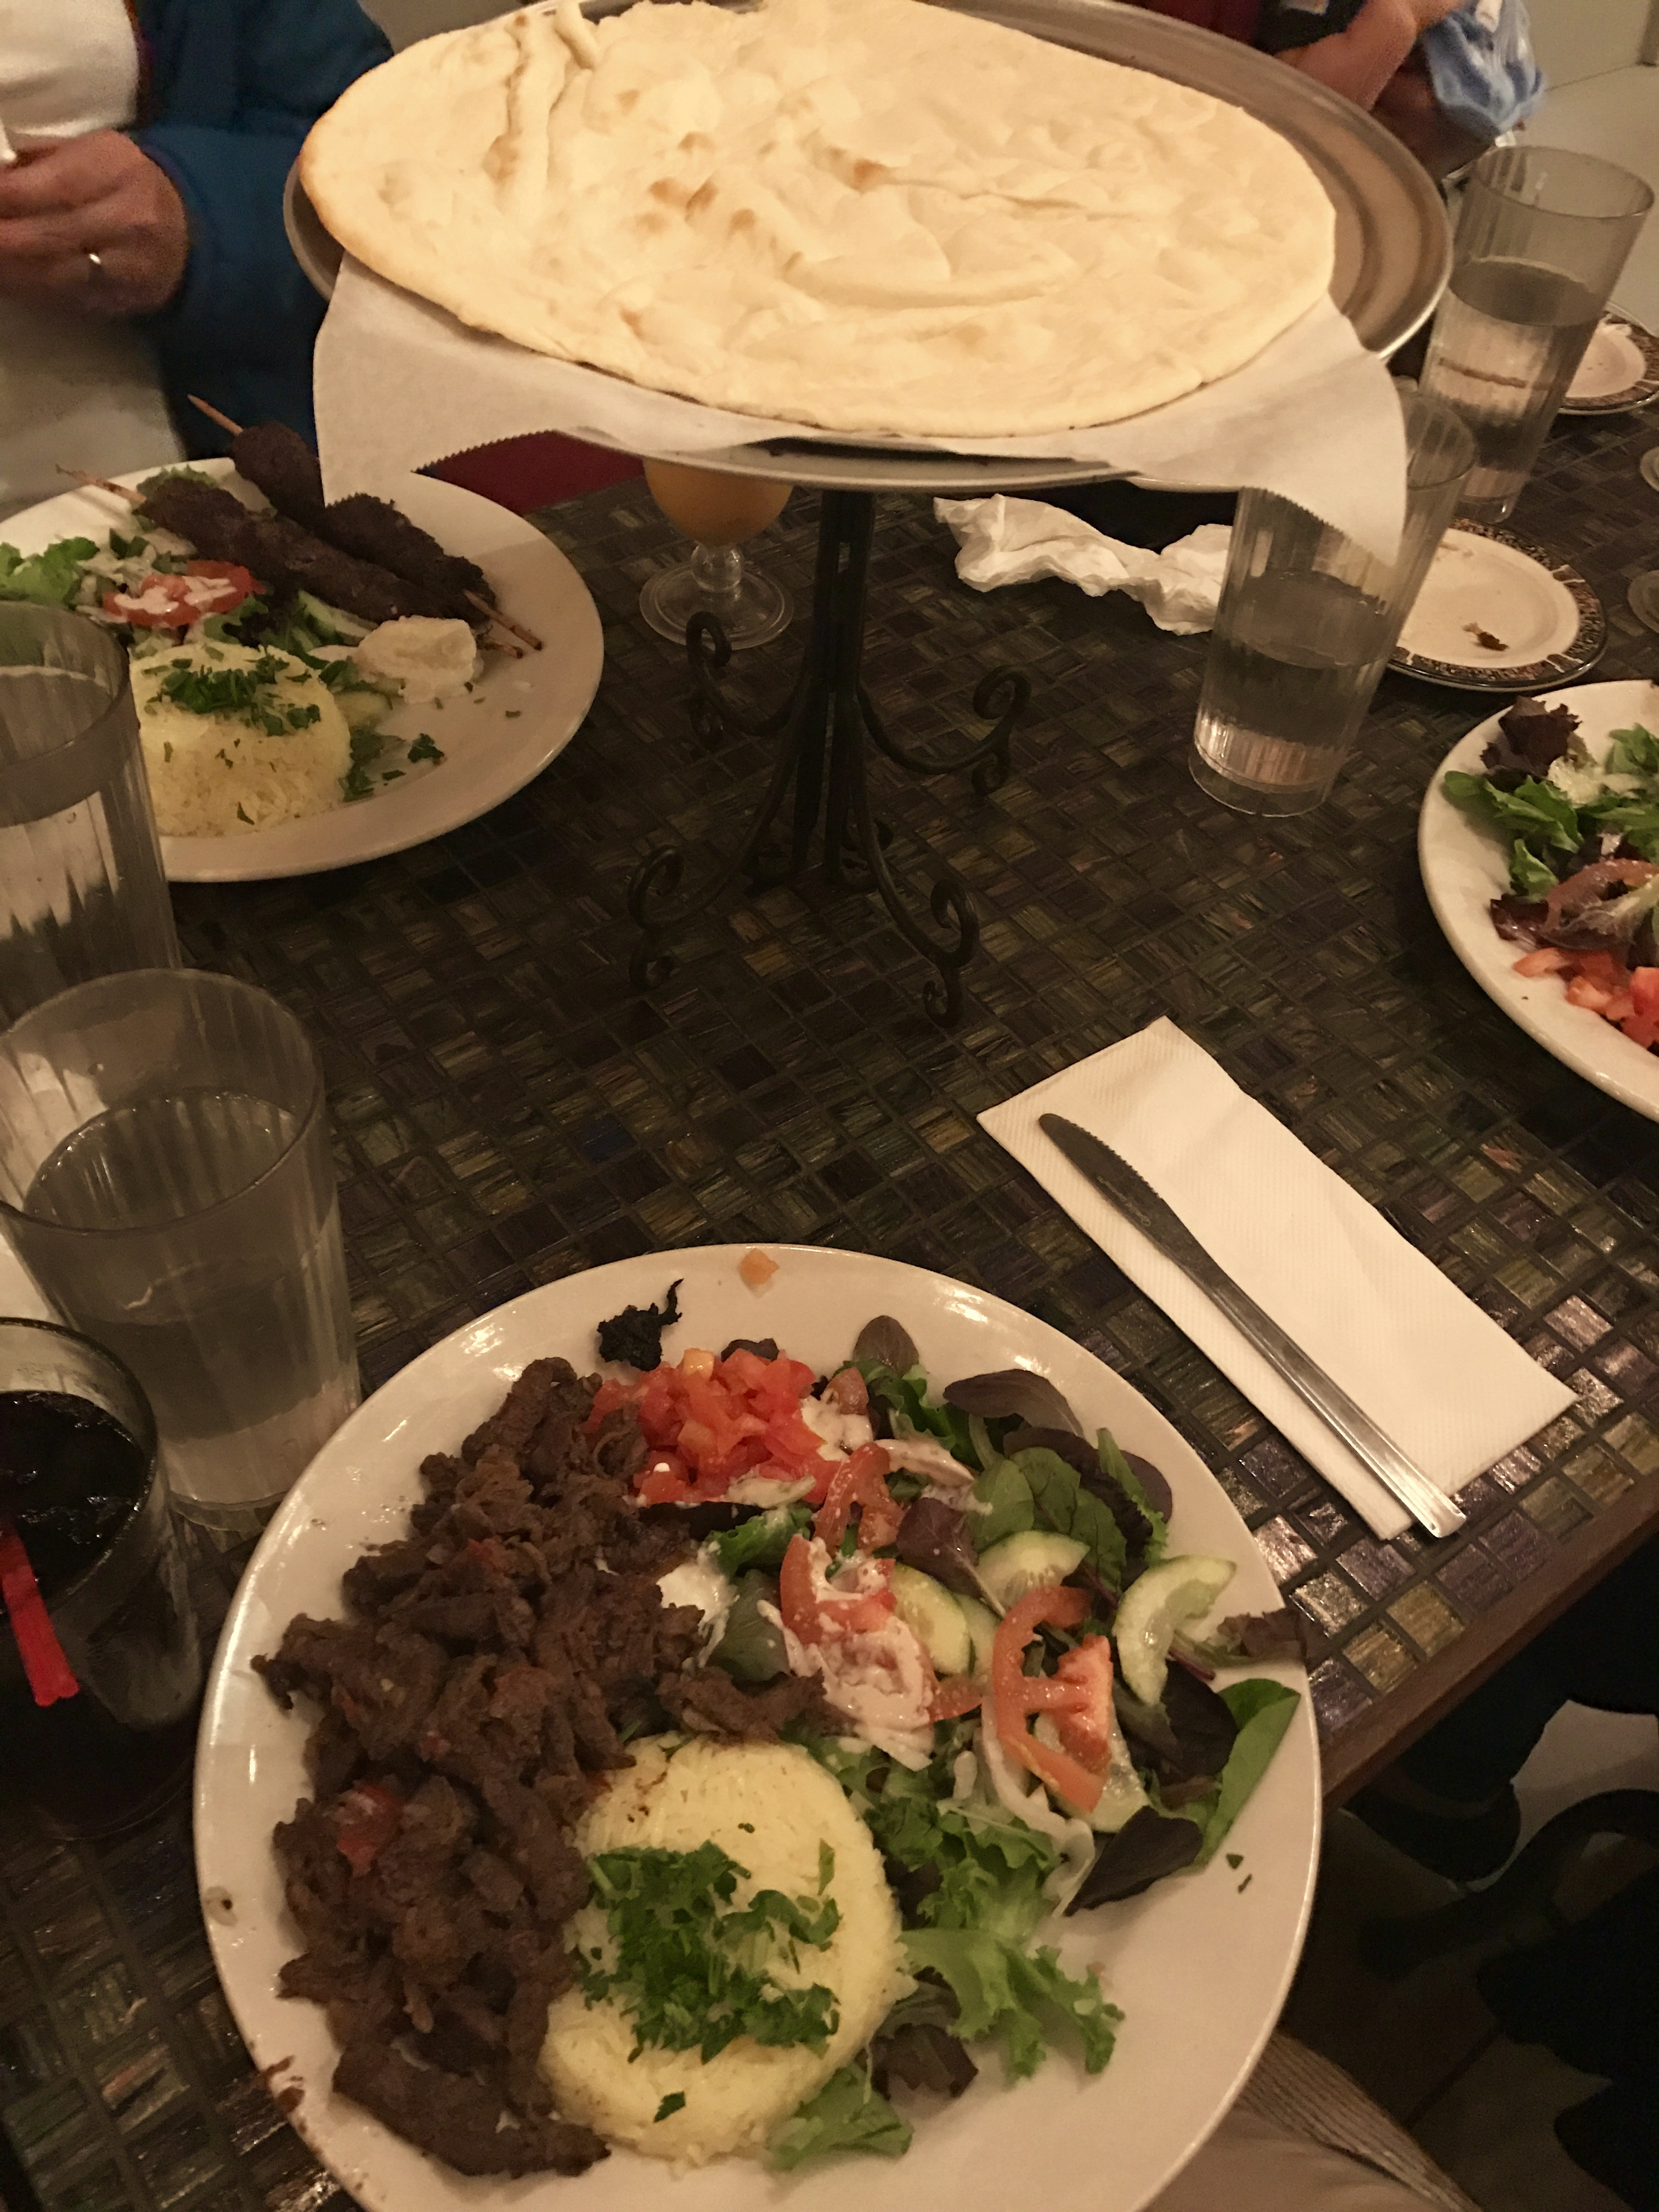 My cousin's Shawarma plate with rice and salad (shredded beef)